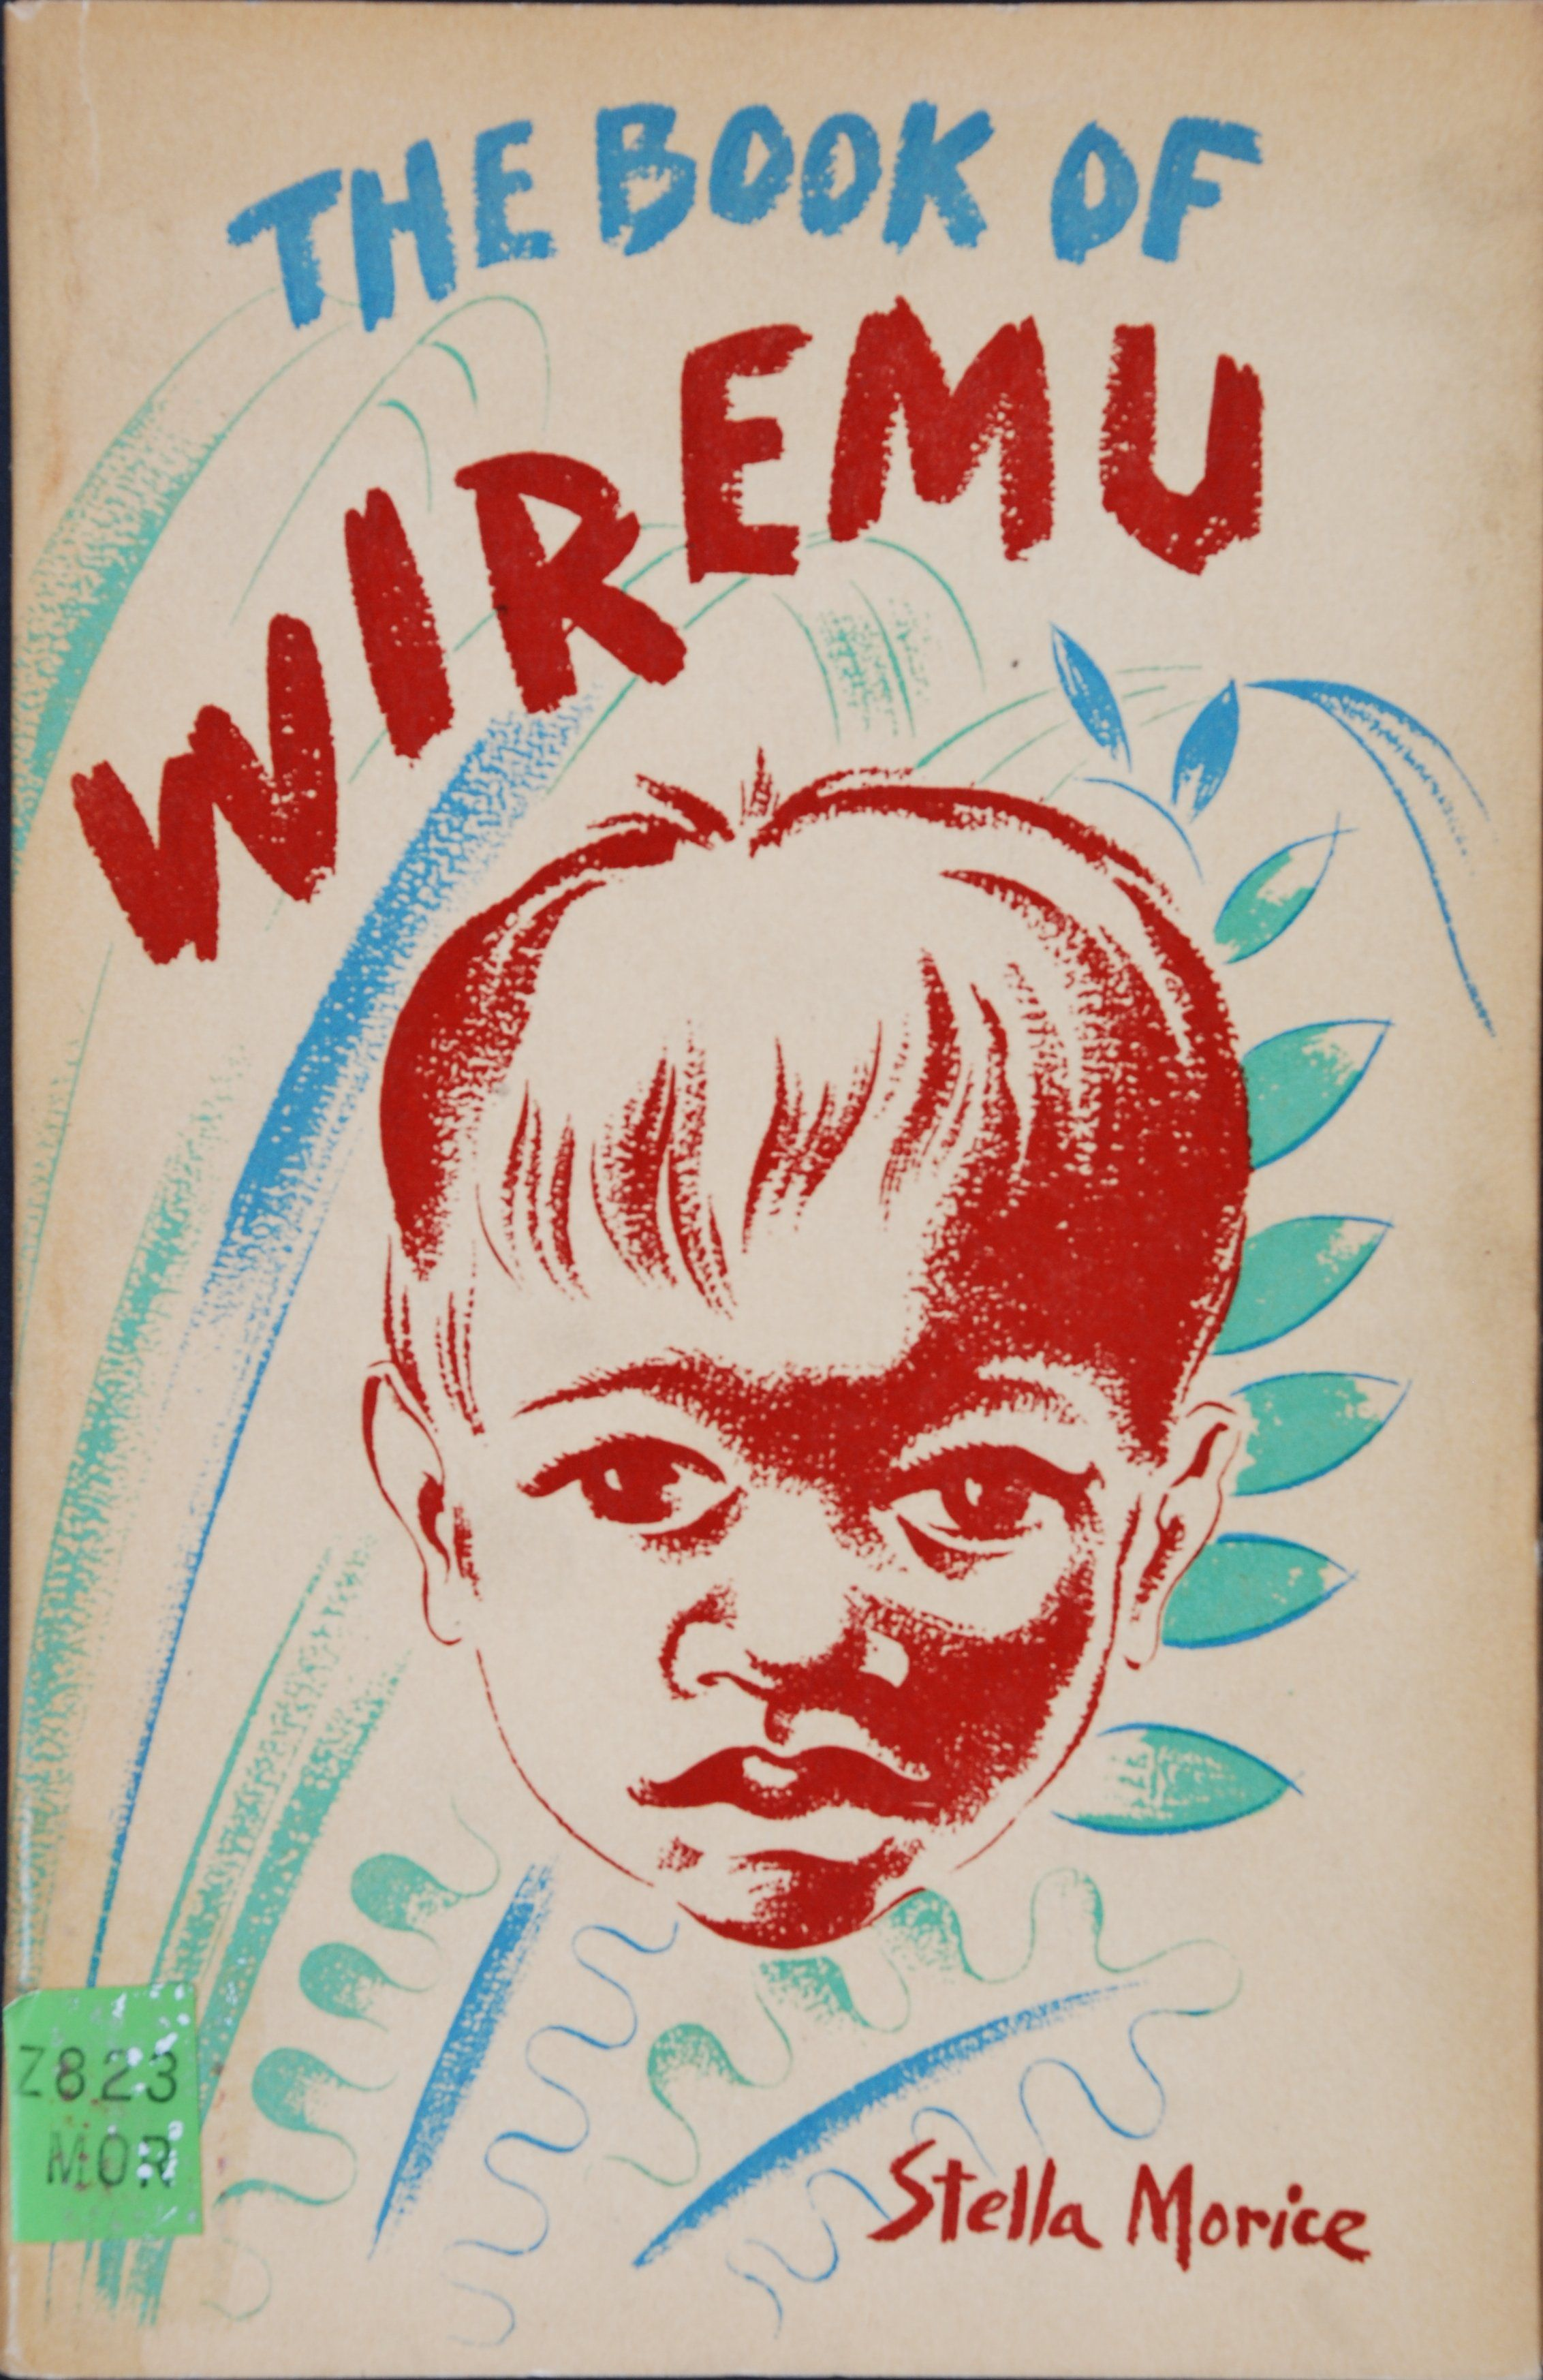 Stella Margery Morice. The book of Wiremu. Wellington [N.Z.]: Progressive Publishing Society, 1944.